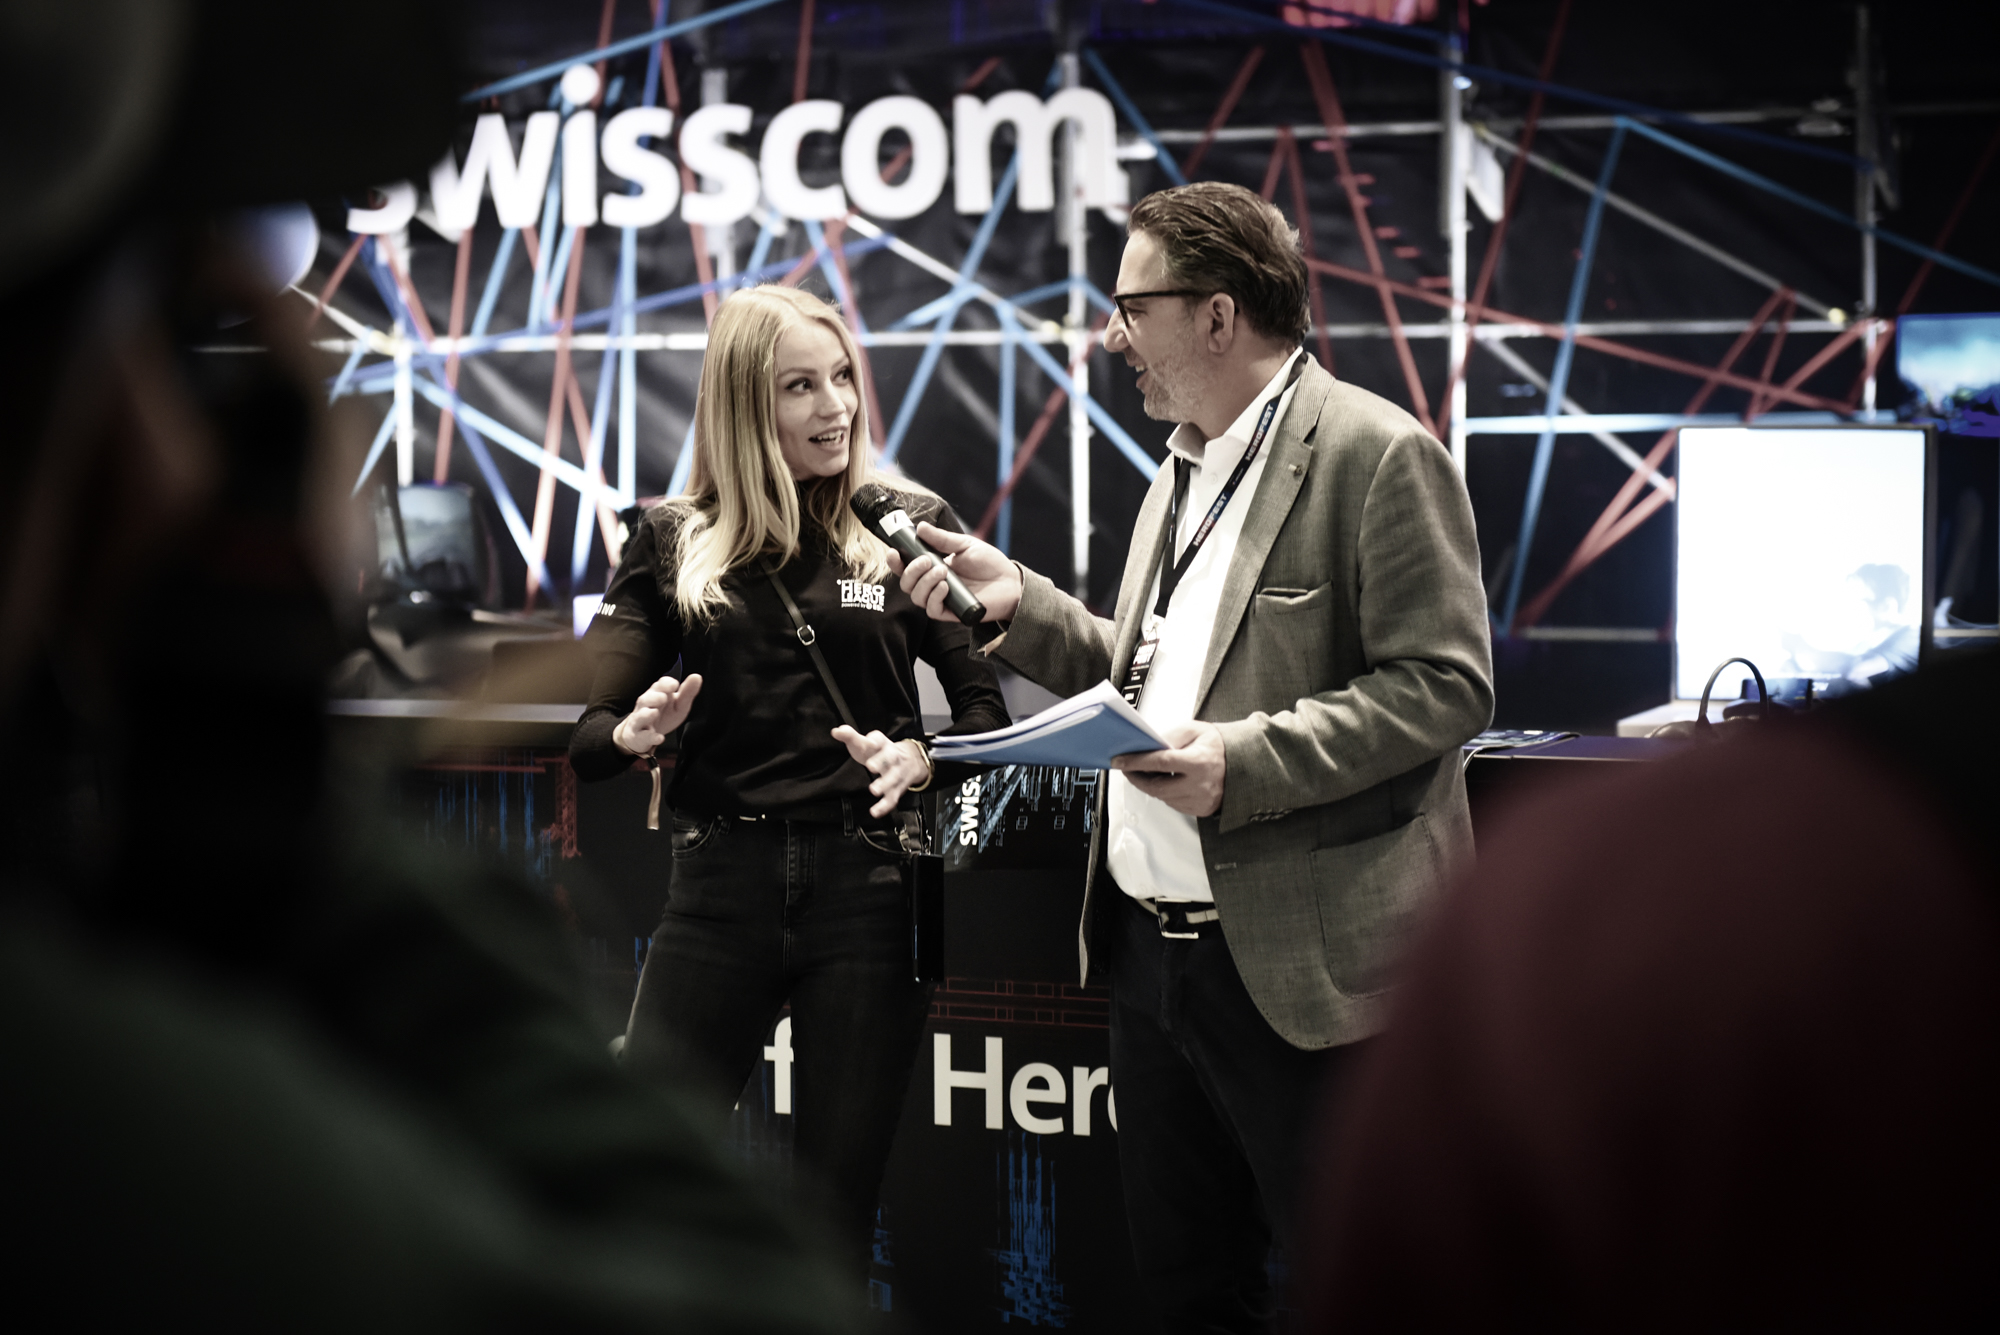 Nadine Jaberg of Swisscom giving an Interview